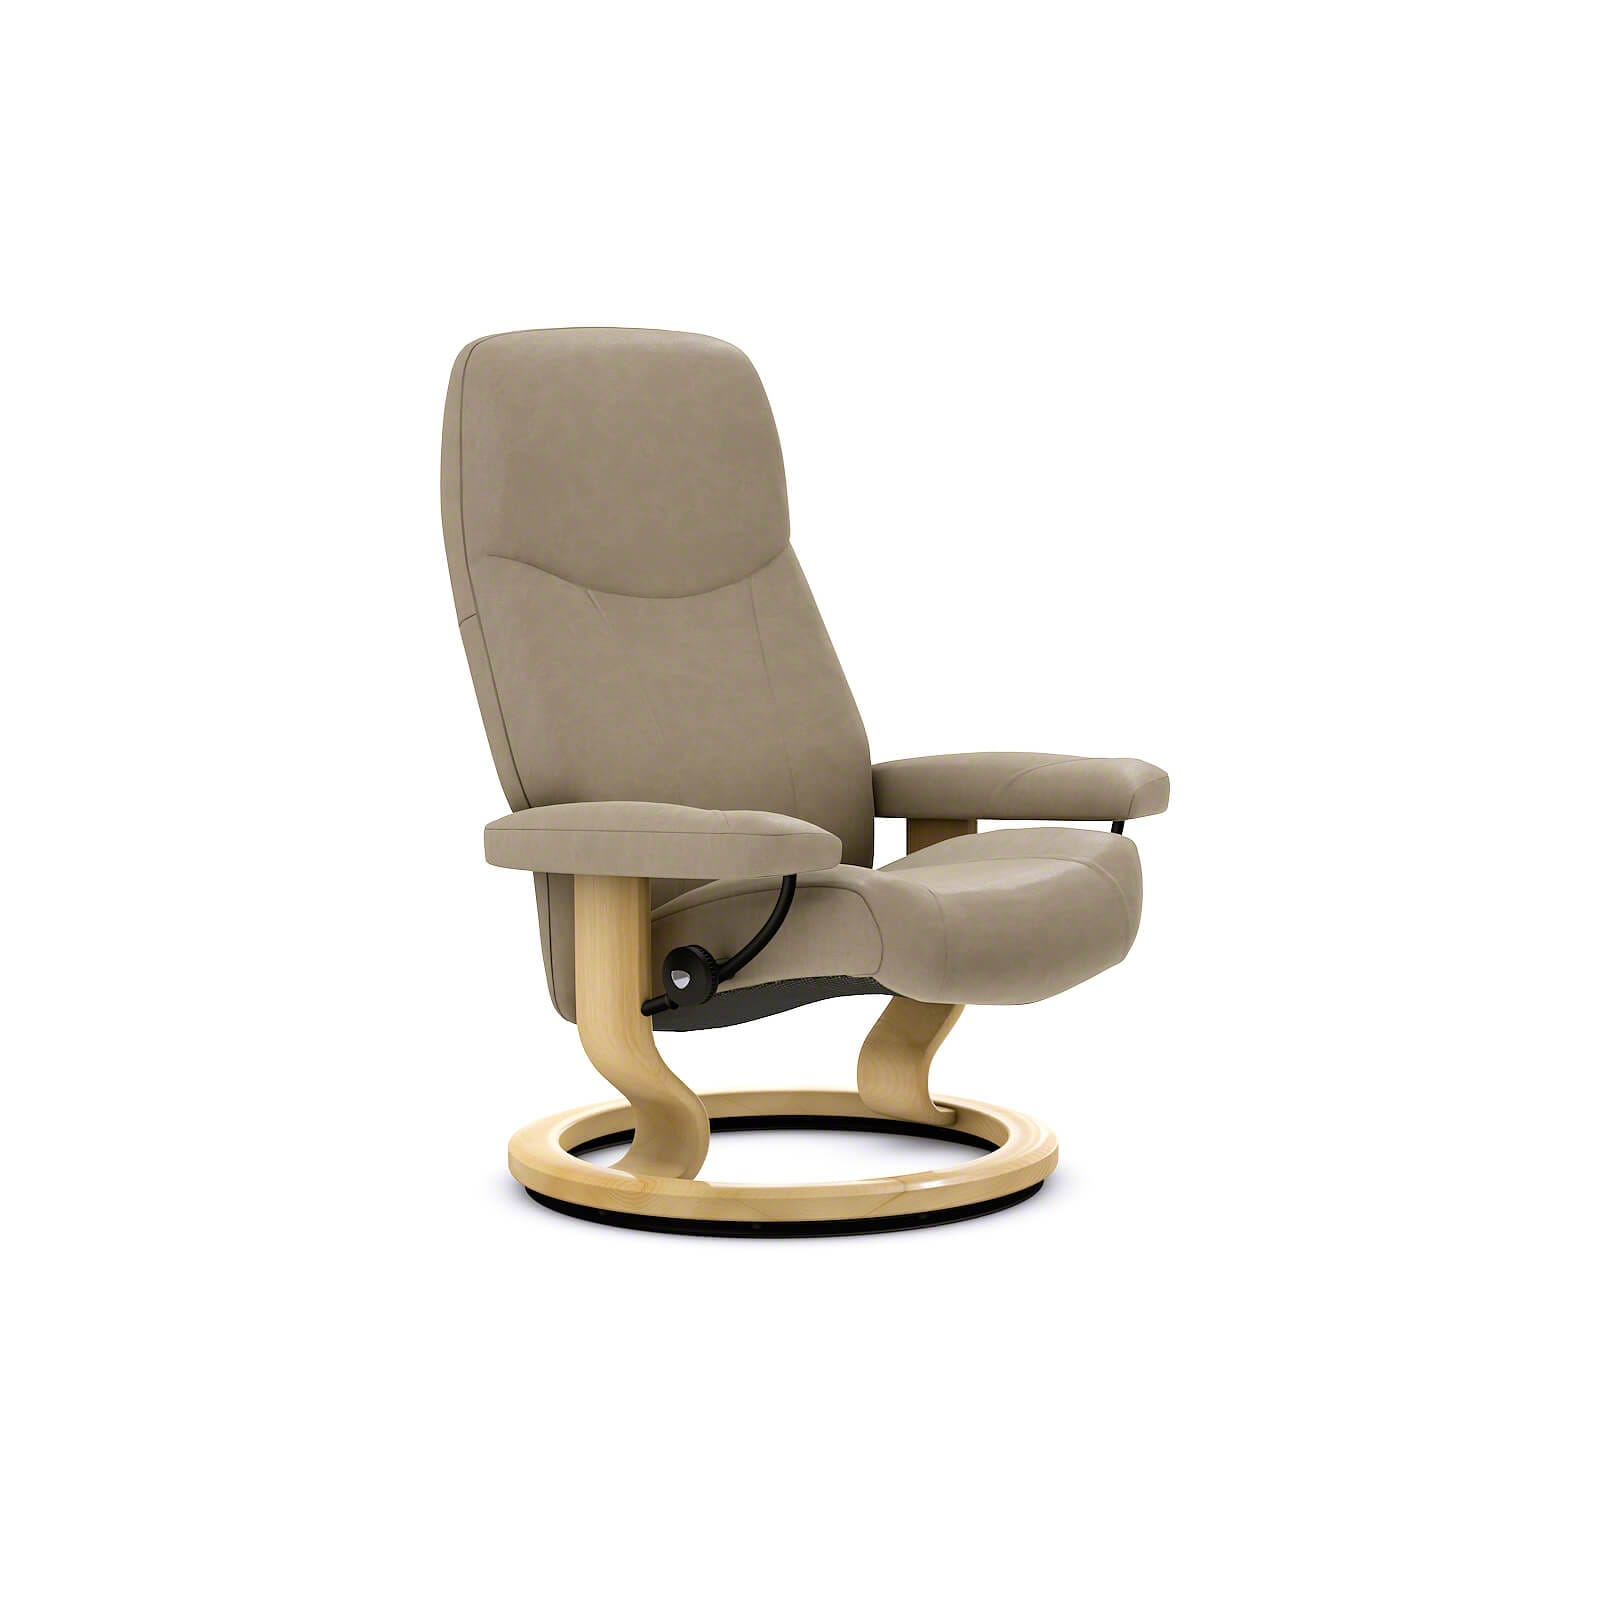 Stressless Consul M Sessel Und Hocker Stressless Consul Sessel Batick Mole Ohne Hocker Stressless